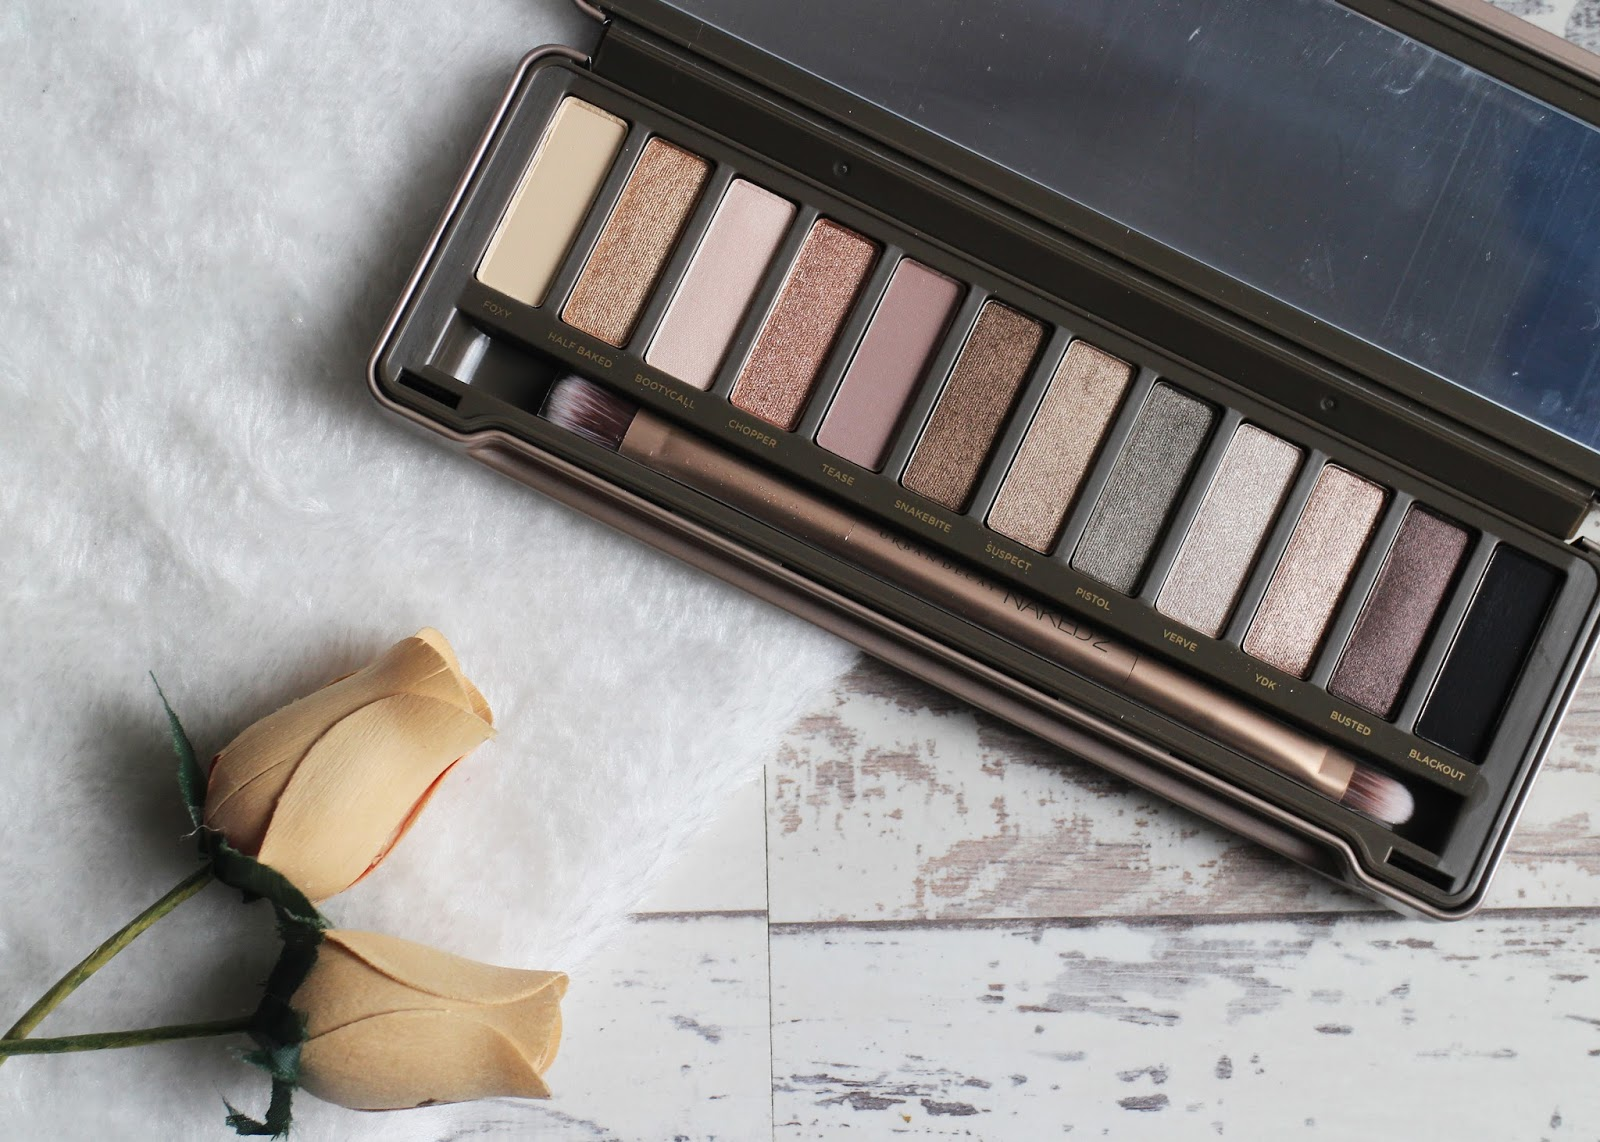 Urban Decay Naked Palettes | Choosing the Right Palette for You